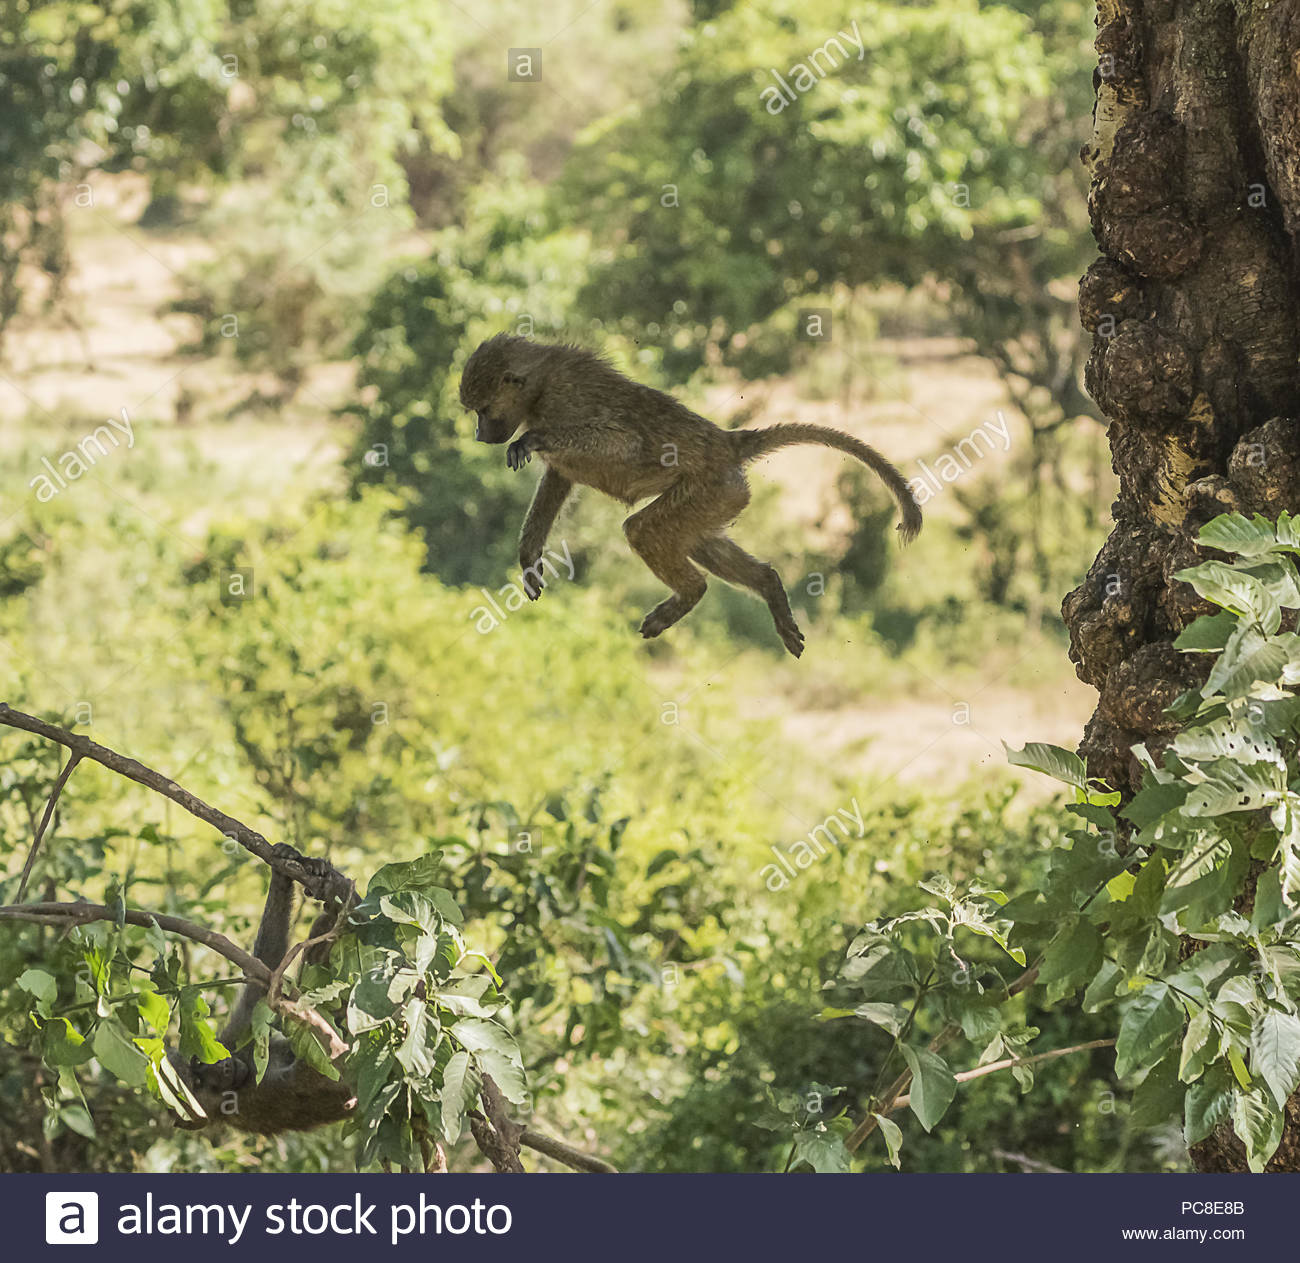 A young baboon in mid-flight as it jumps from a tree trunk to join its siblings below. - Stock Image